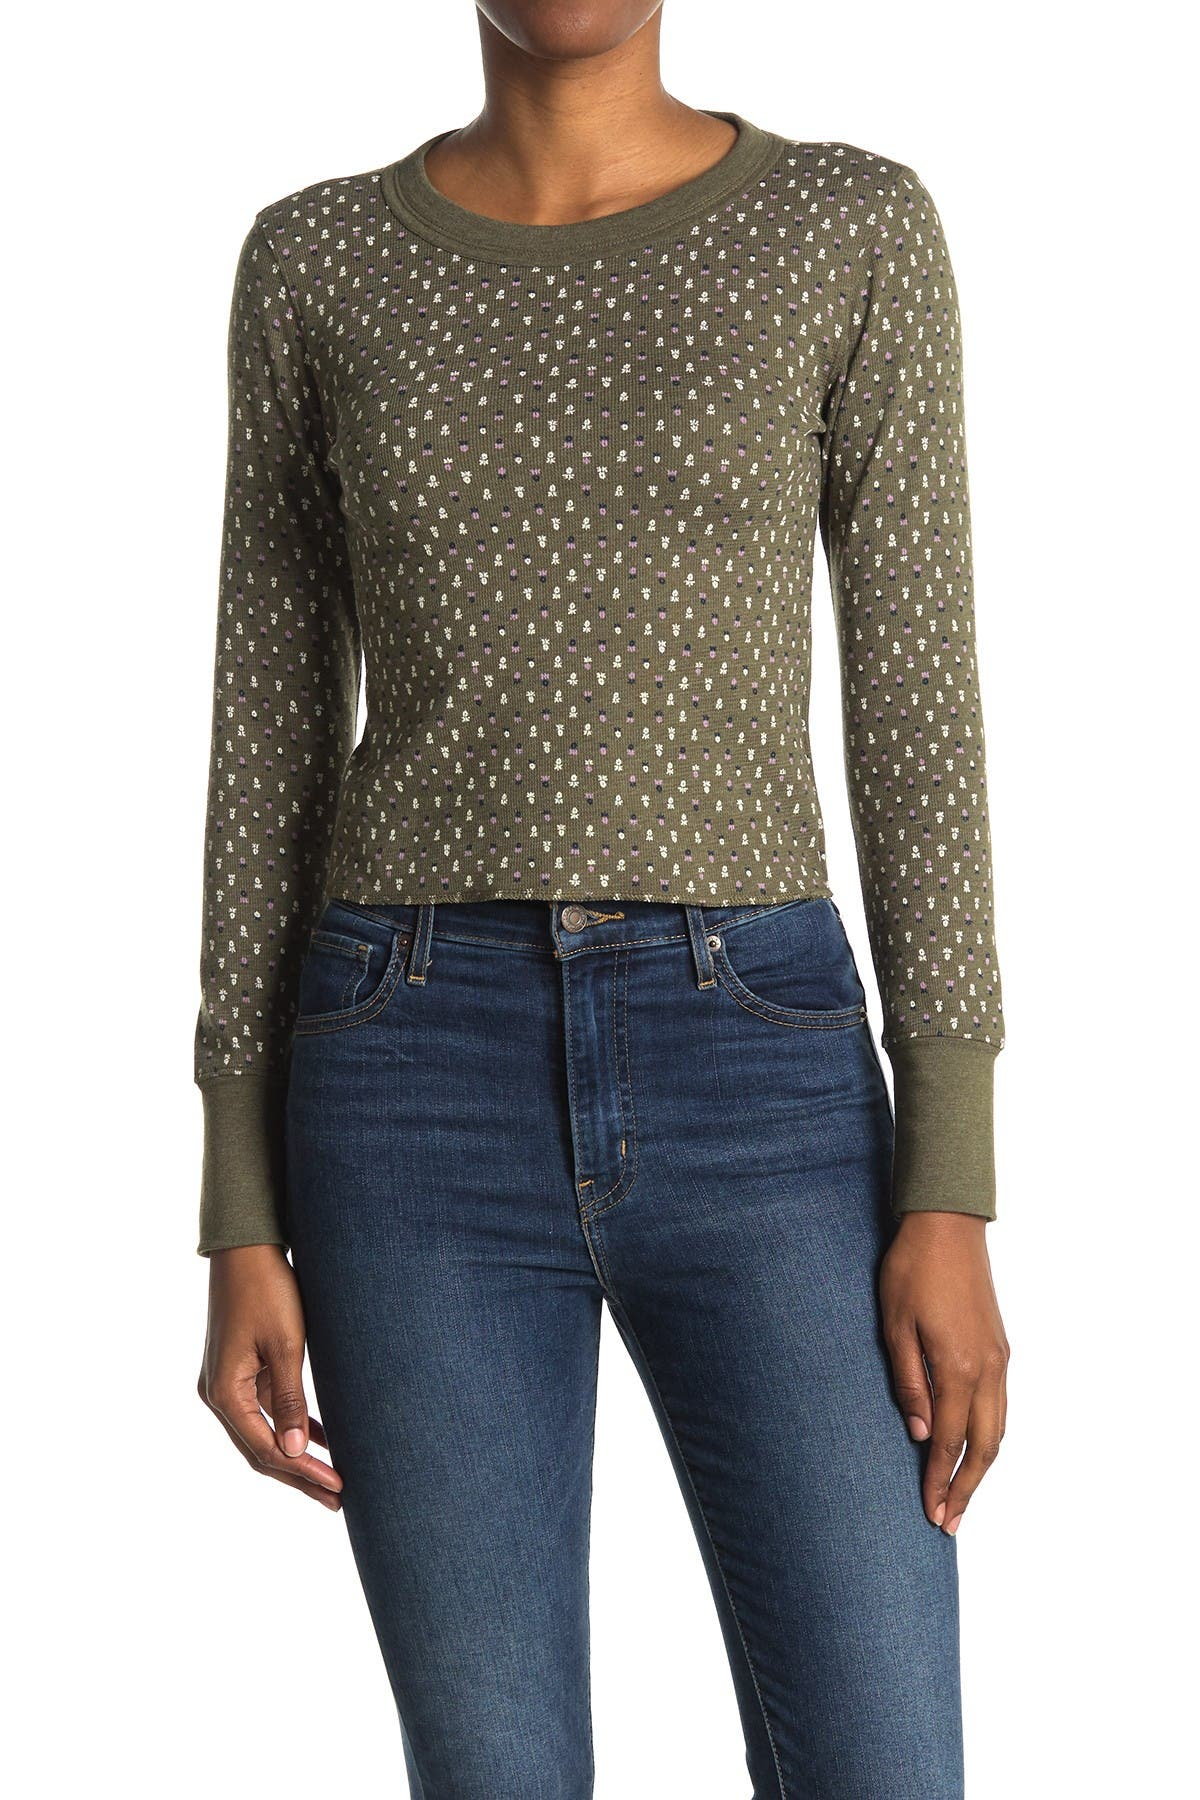 Image of Abound Long Sleeve Thermal Shirt